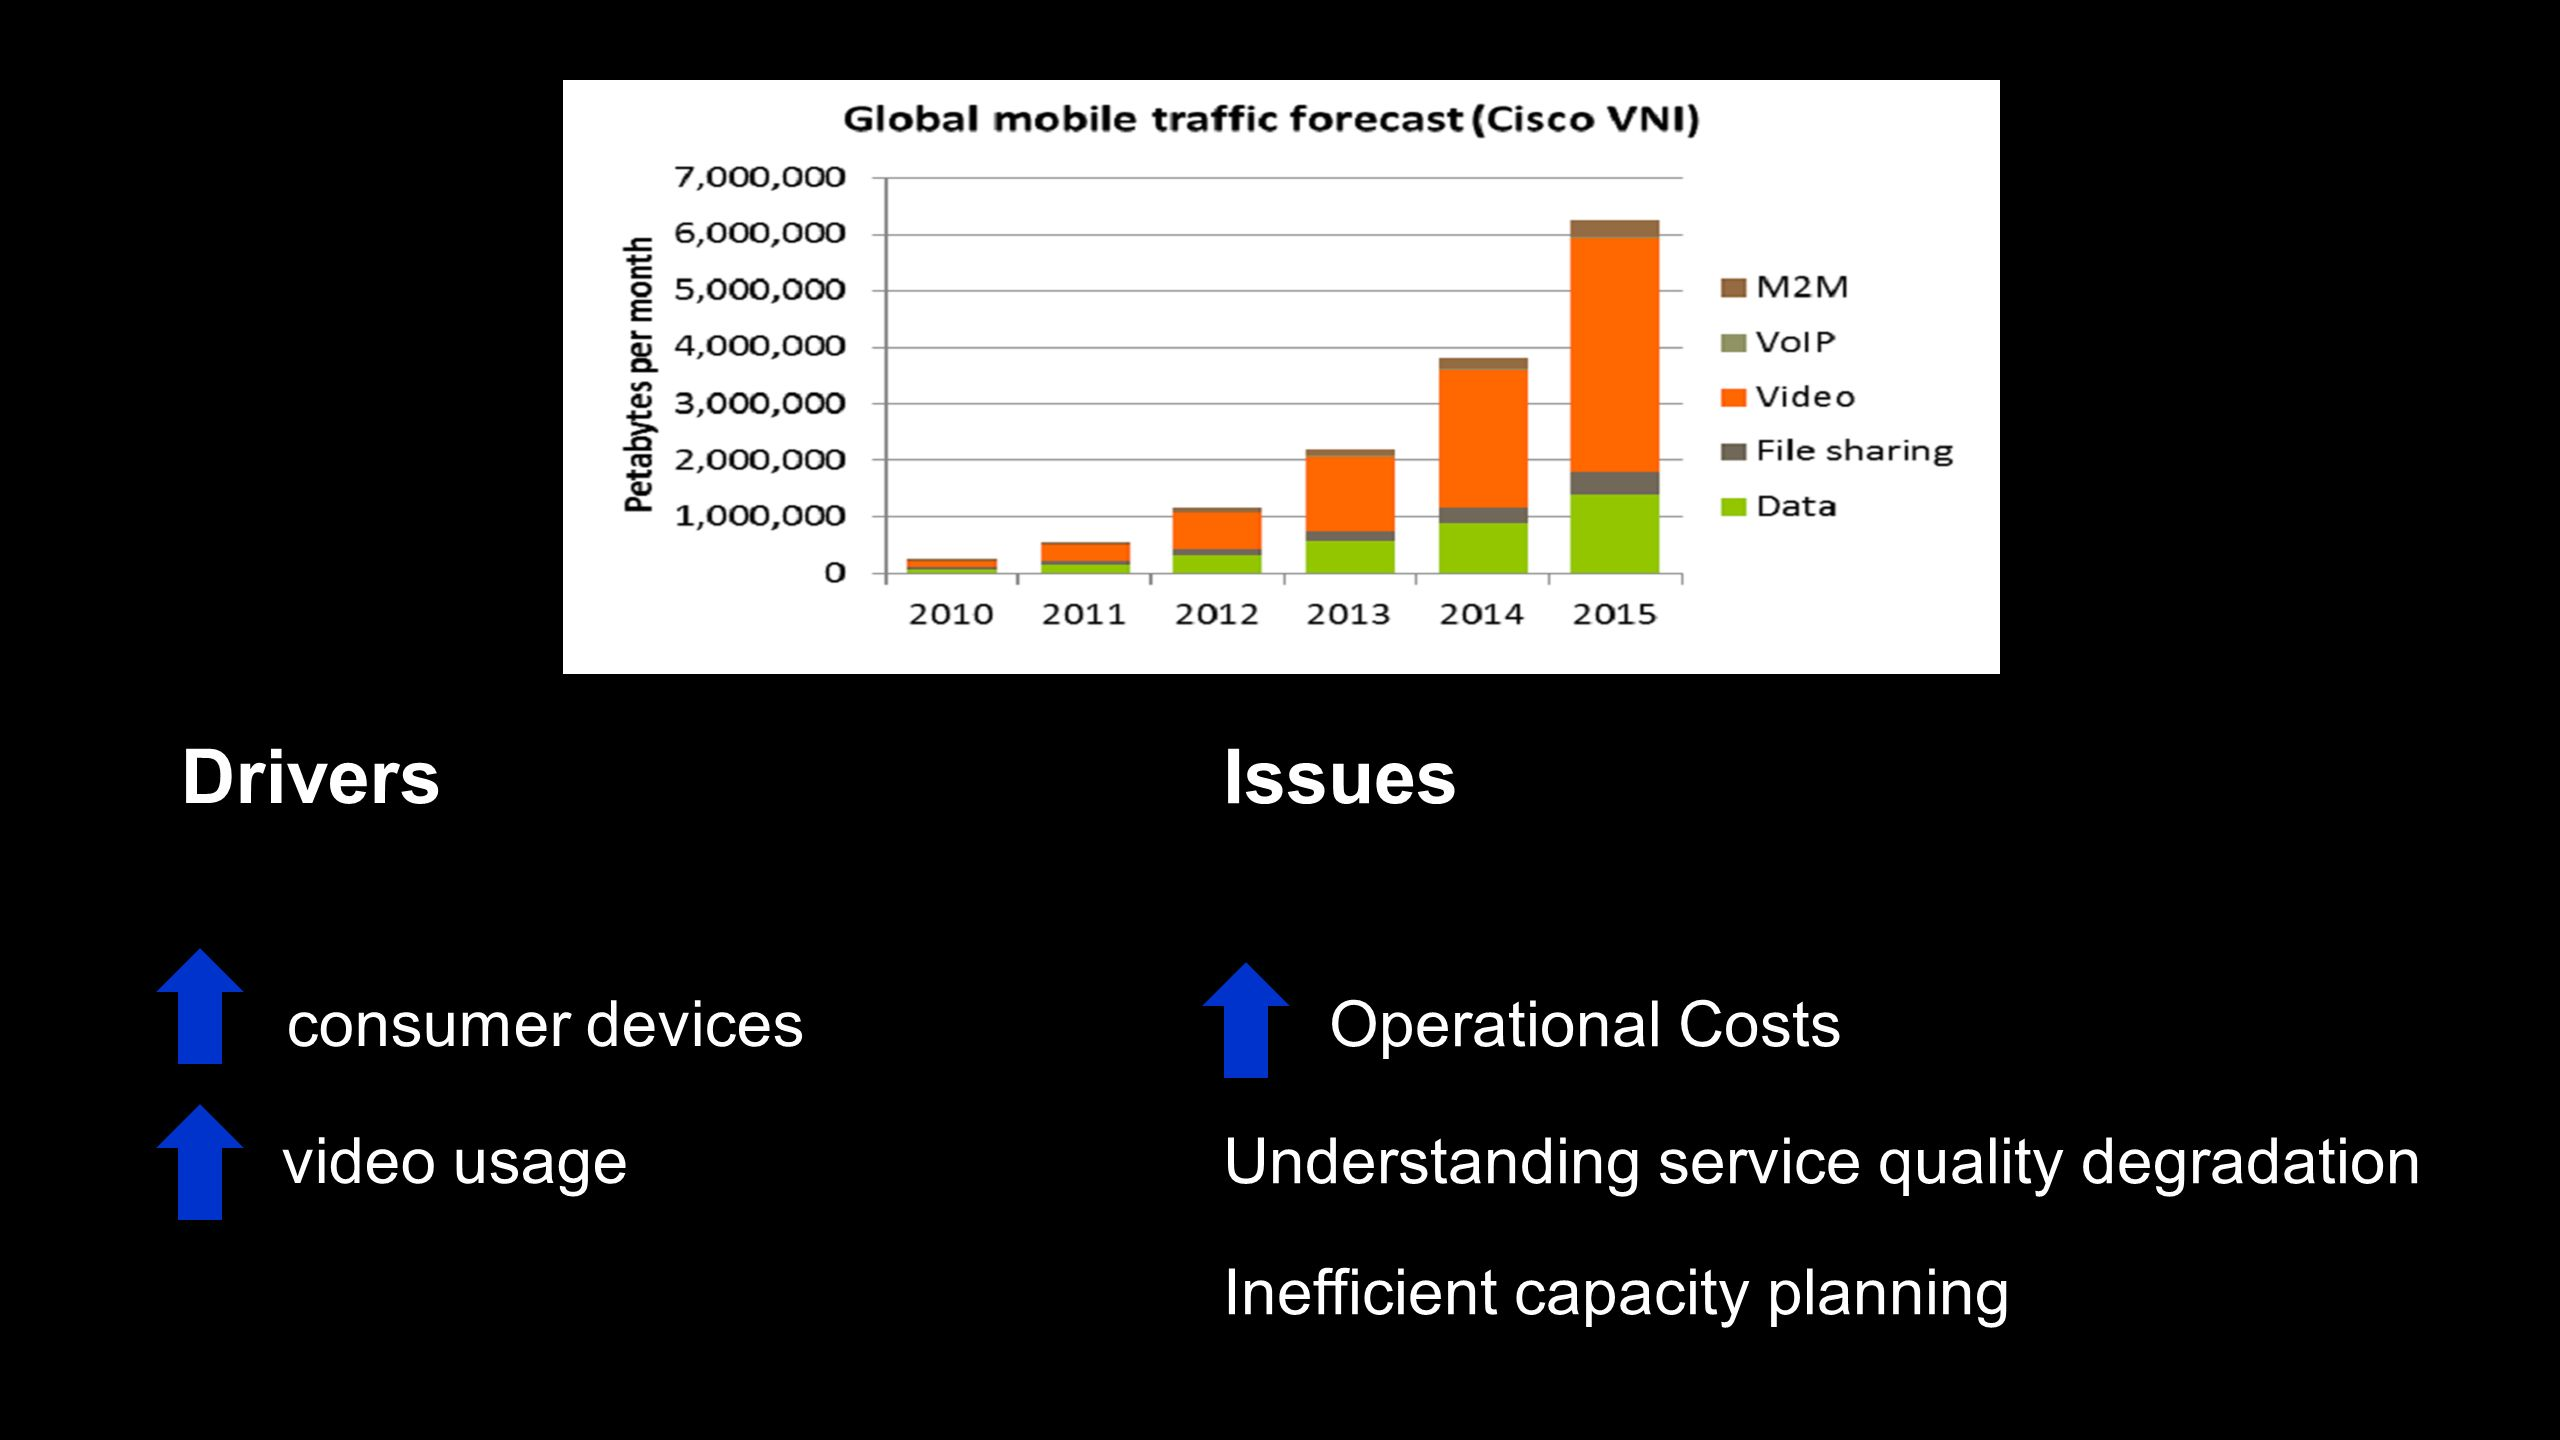 Drivers consumer devices video usage Issues Operational Costs Understanding service quality degradation Inefficient capacity planning